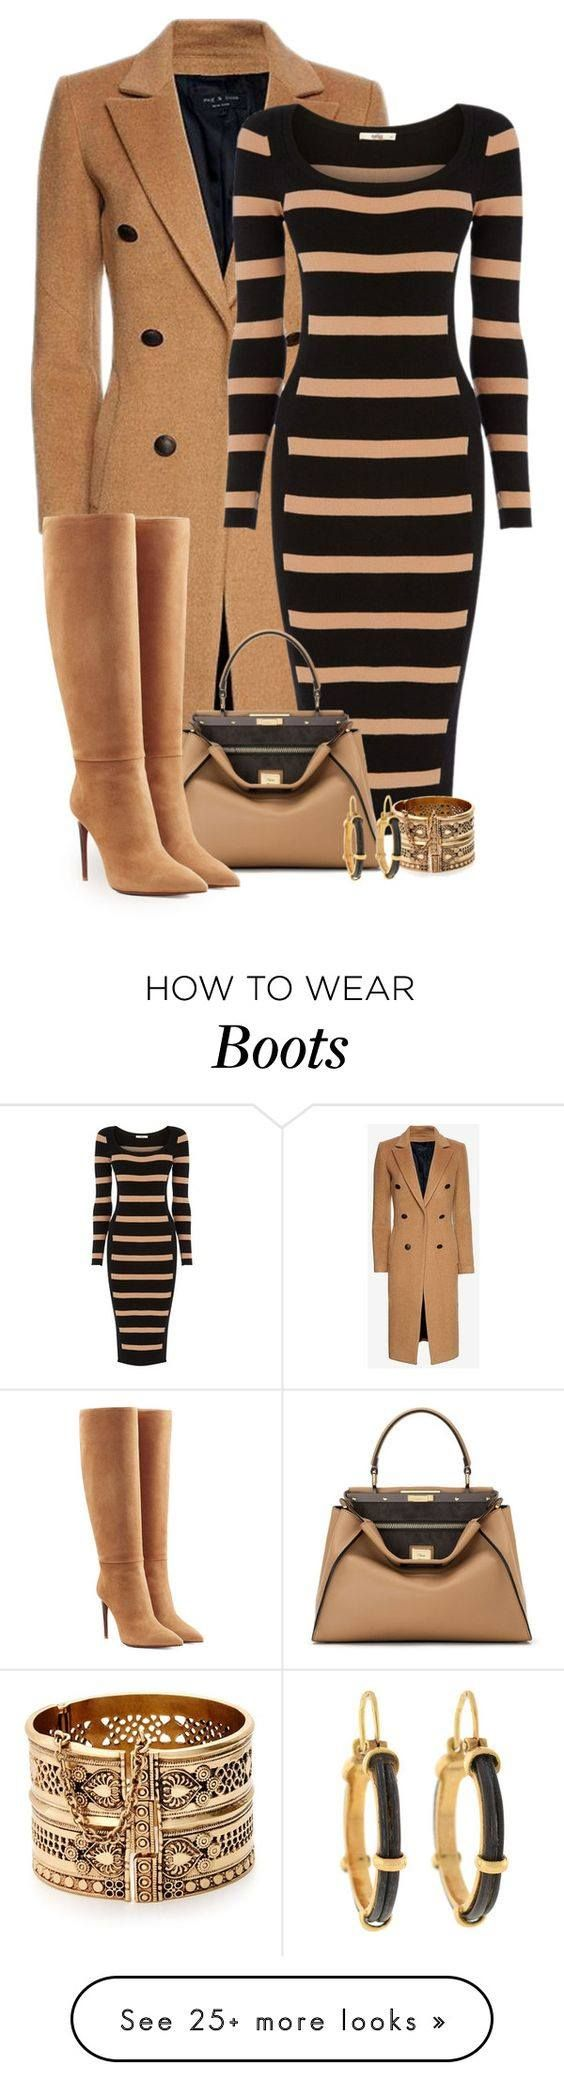 Find More at => http://feedproxy.google.com/~r/amazingoutfits/~3/18qH75k0QWI/AmazingOutfits.page